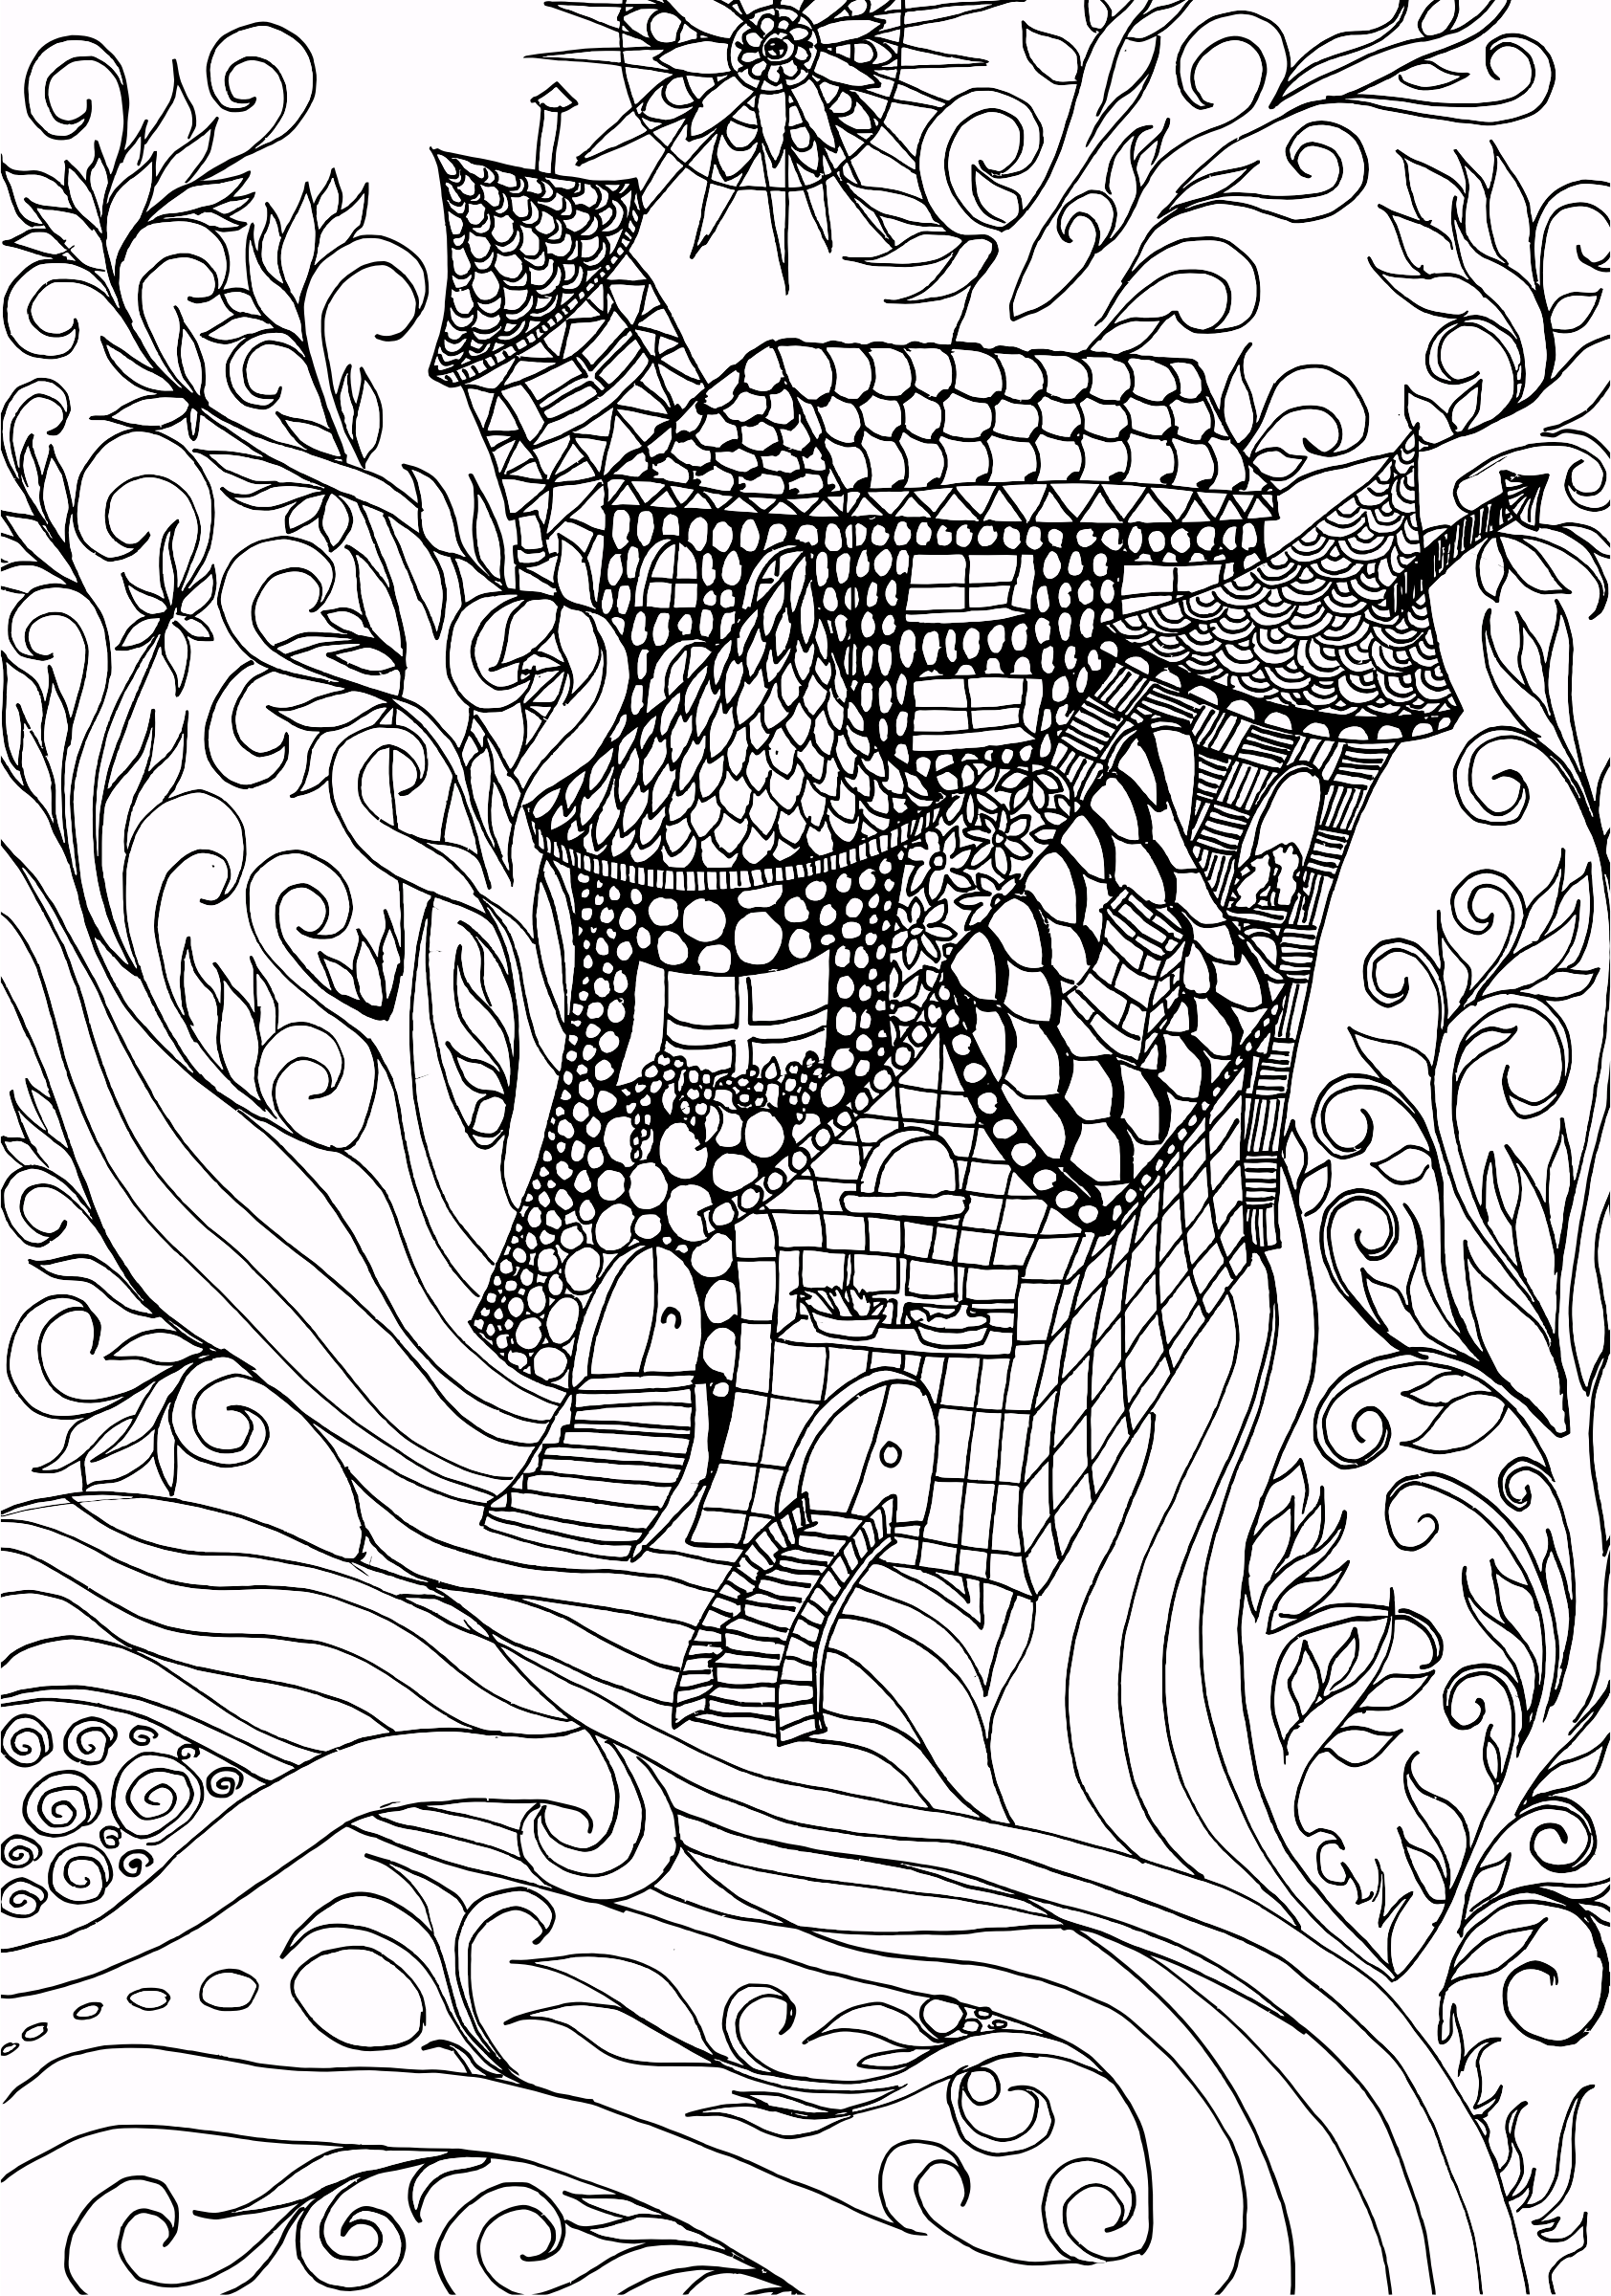 Fantasy Flourish Line Art by GDJ